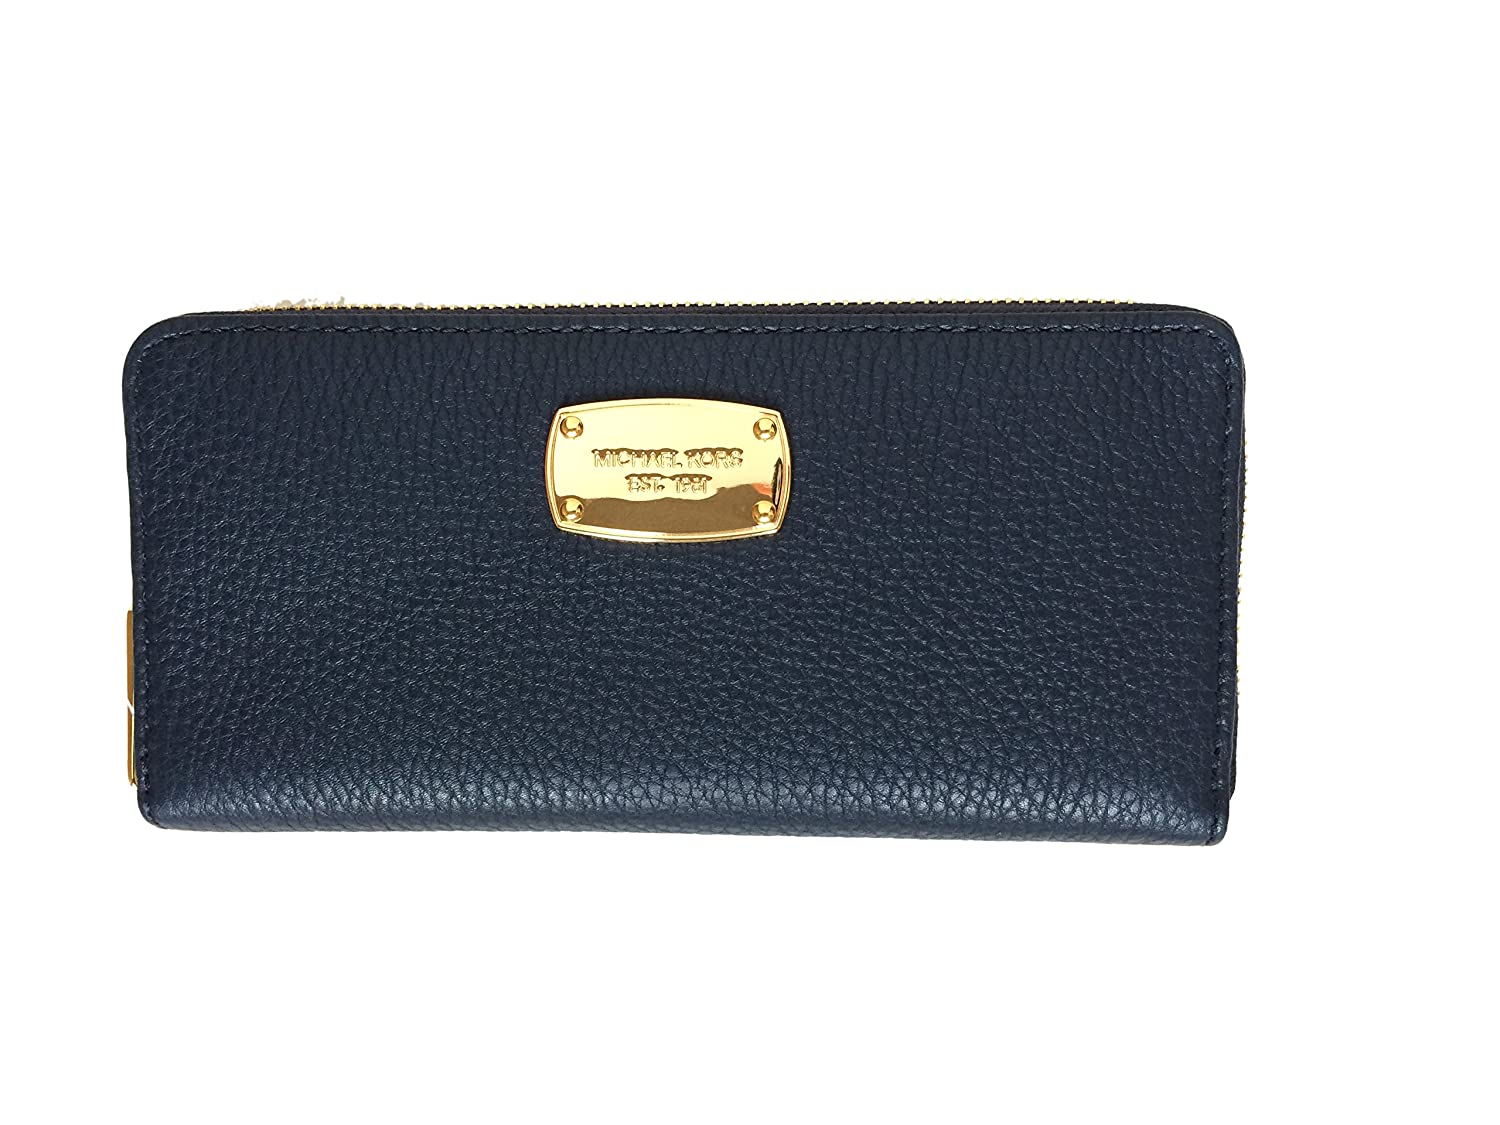 0a2e4893ec35 Amazon.com: Michael Kors Jet Set Item Zip Around Continental Accordion  Style Leather Wallet in Navy: Shoes